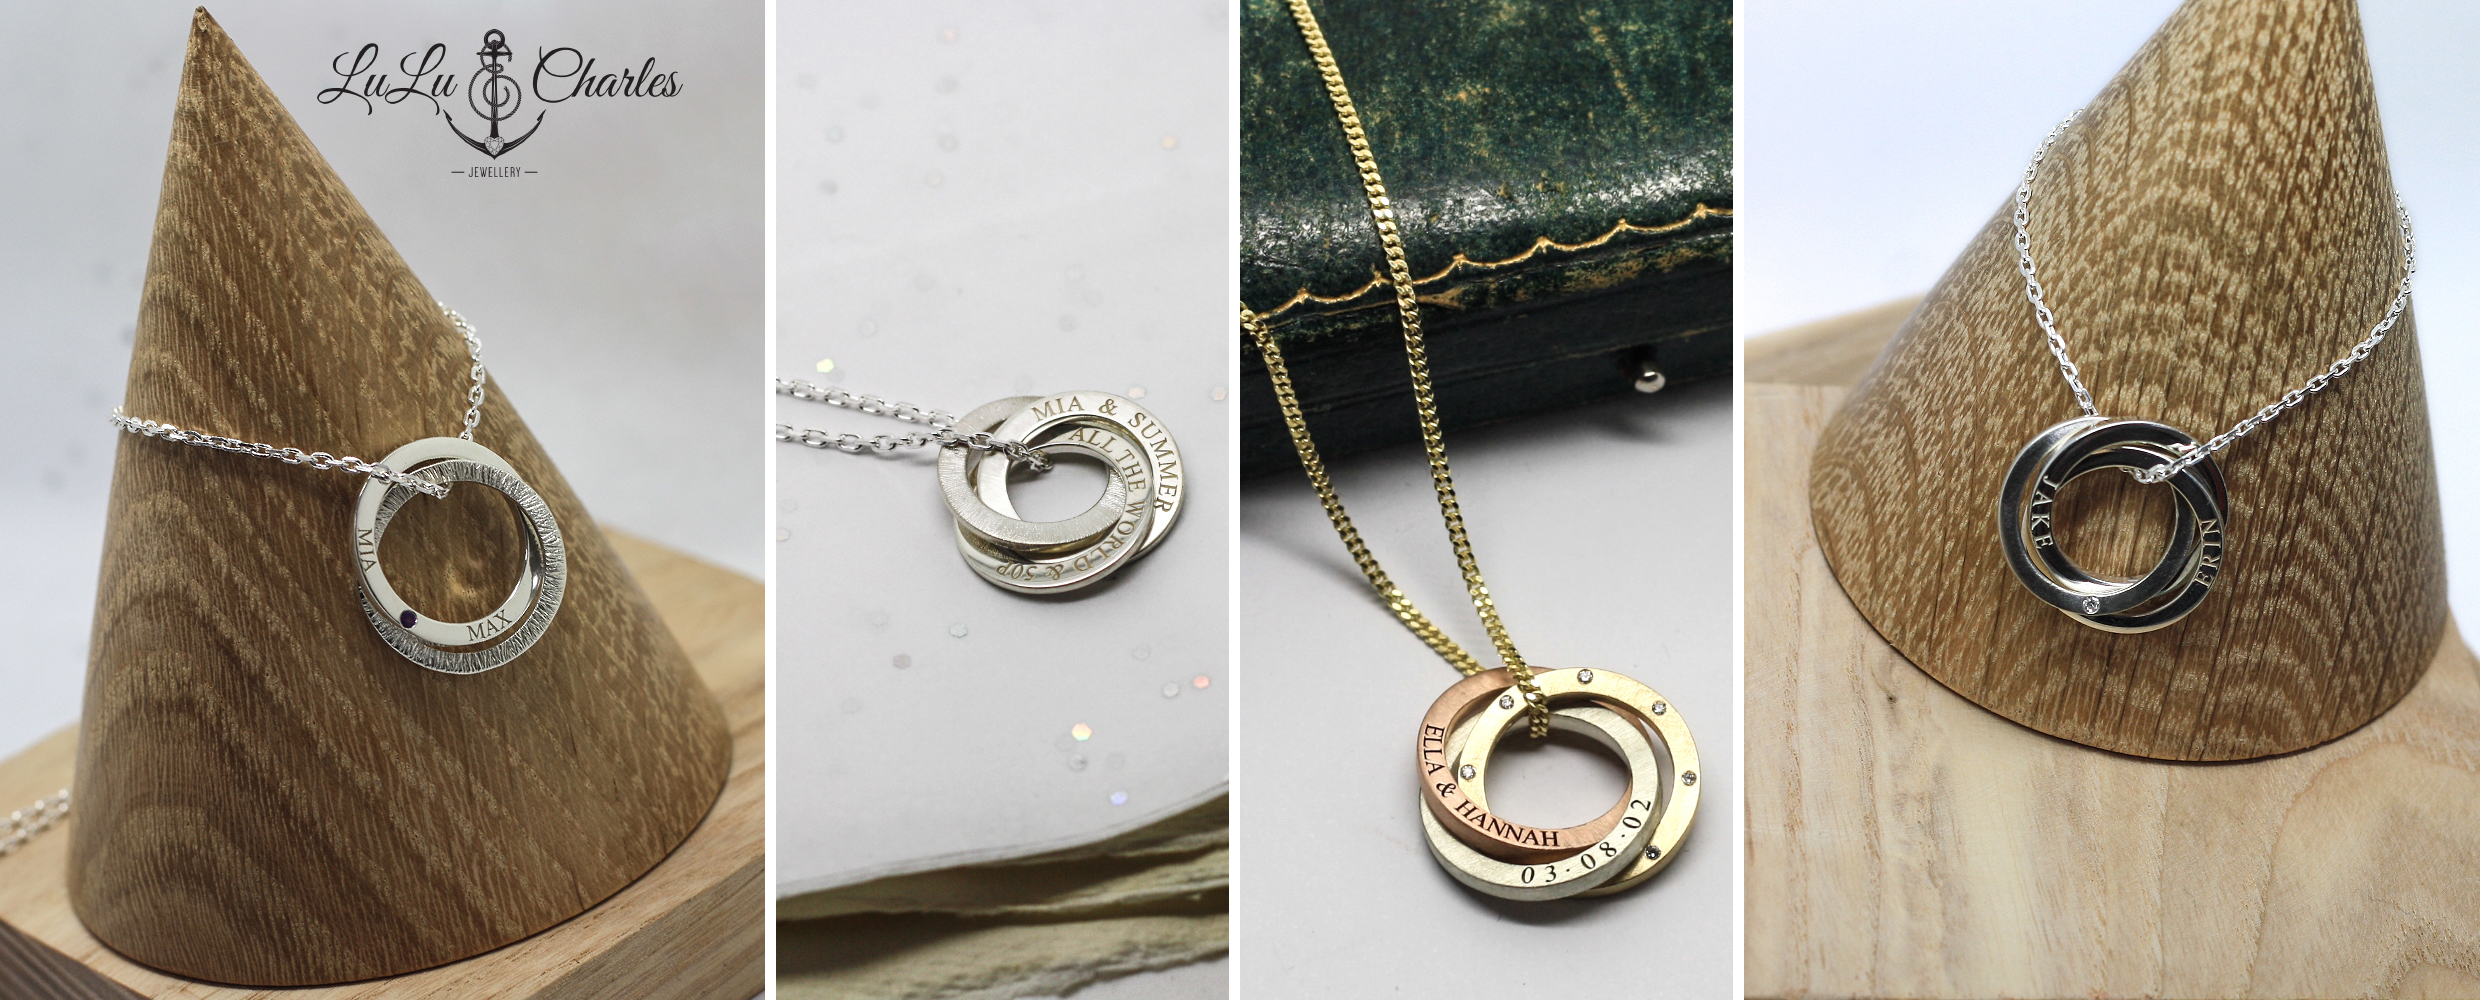 Handmade personalised Sterling Silver Halo Necklace by LuLu & Charles Jewellery